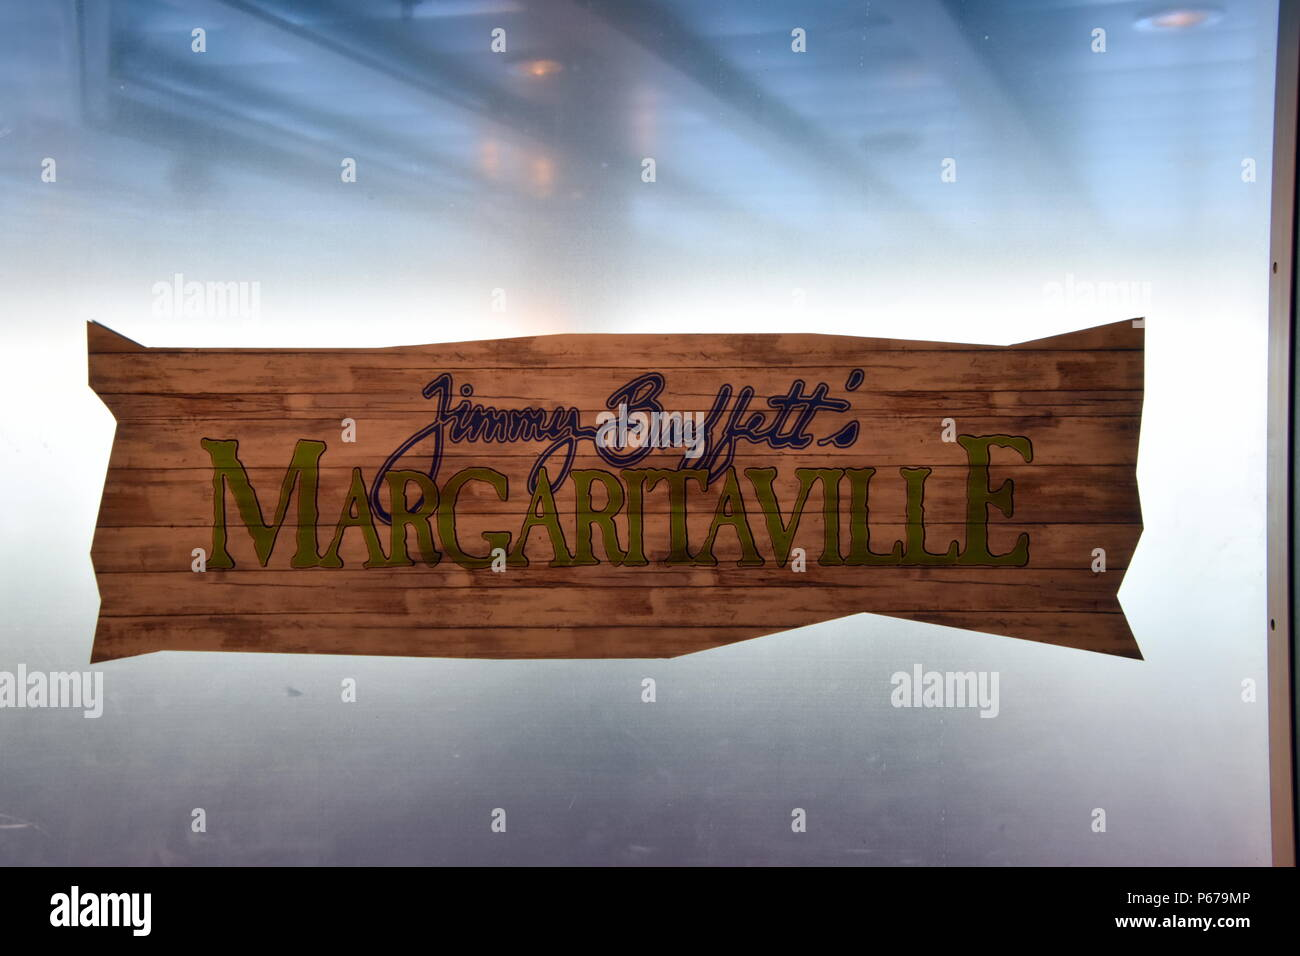 Baltic Sea - June 6, 2018: This is the sign for Jimmy Buffett's Margaritaville Restaurant located on the Norwegian Breakaway Cruise Ship as seen on th - Stock Image